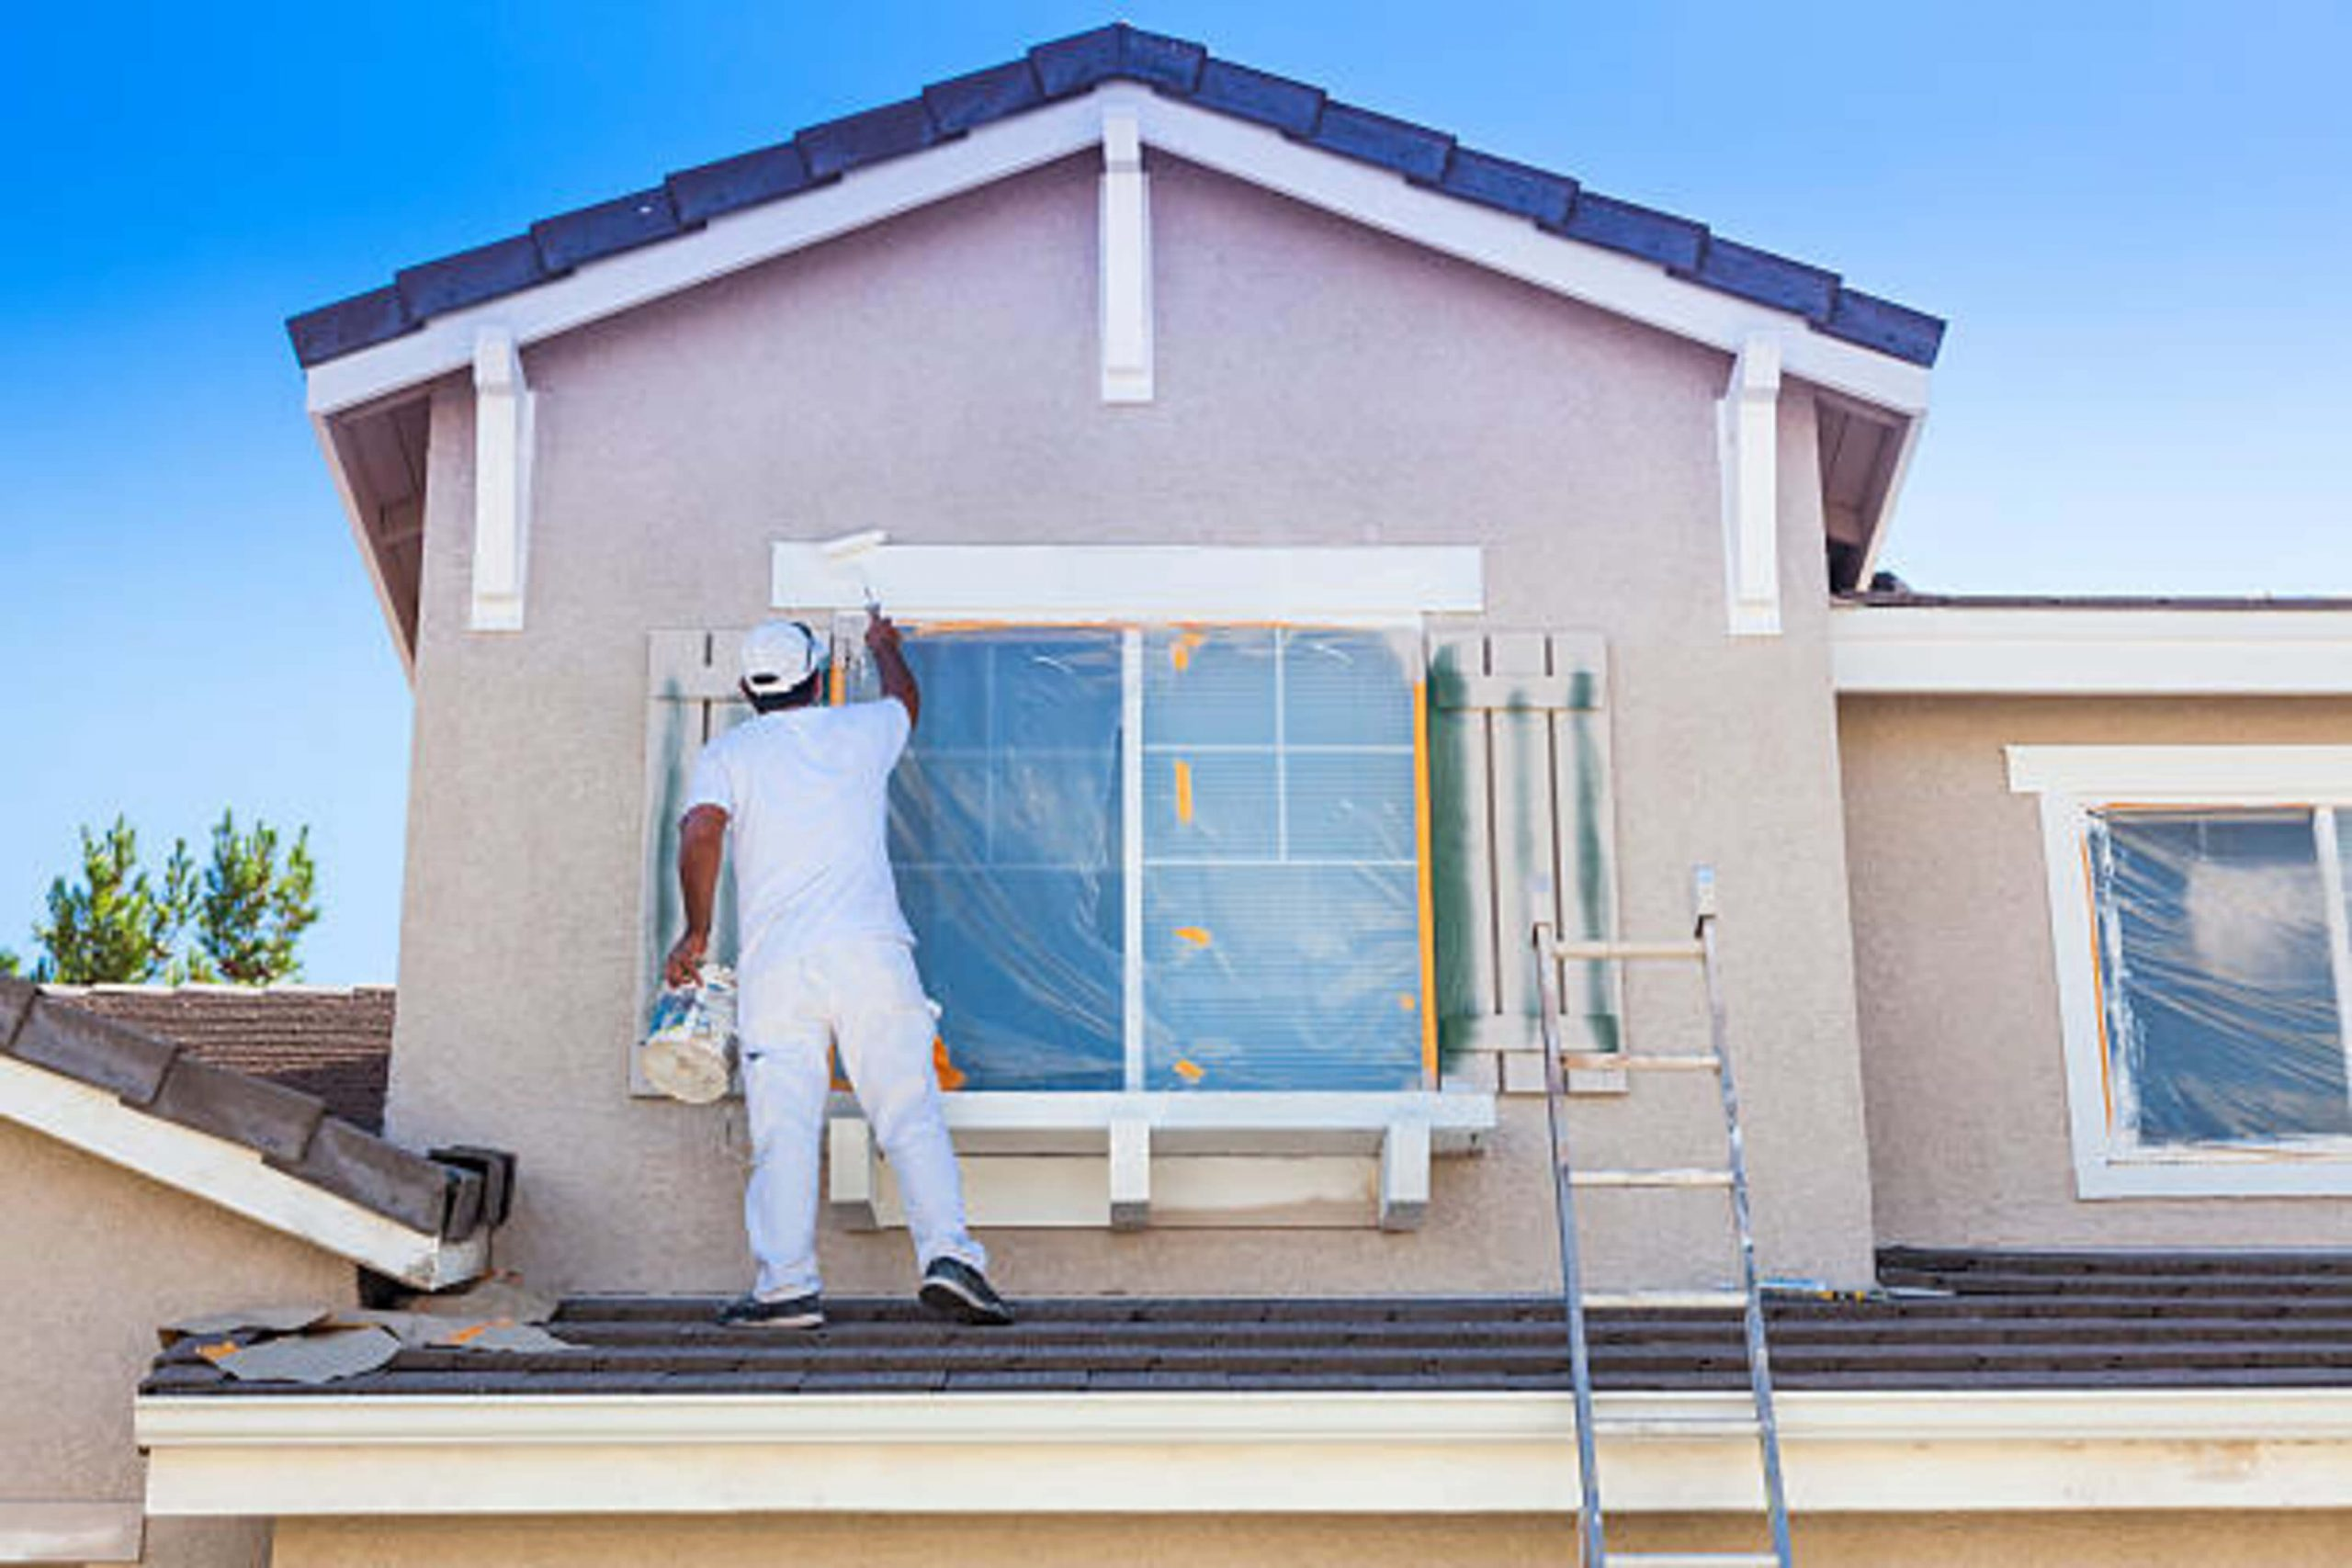 The Danger of Lead in Paint & Other Home Building Materials